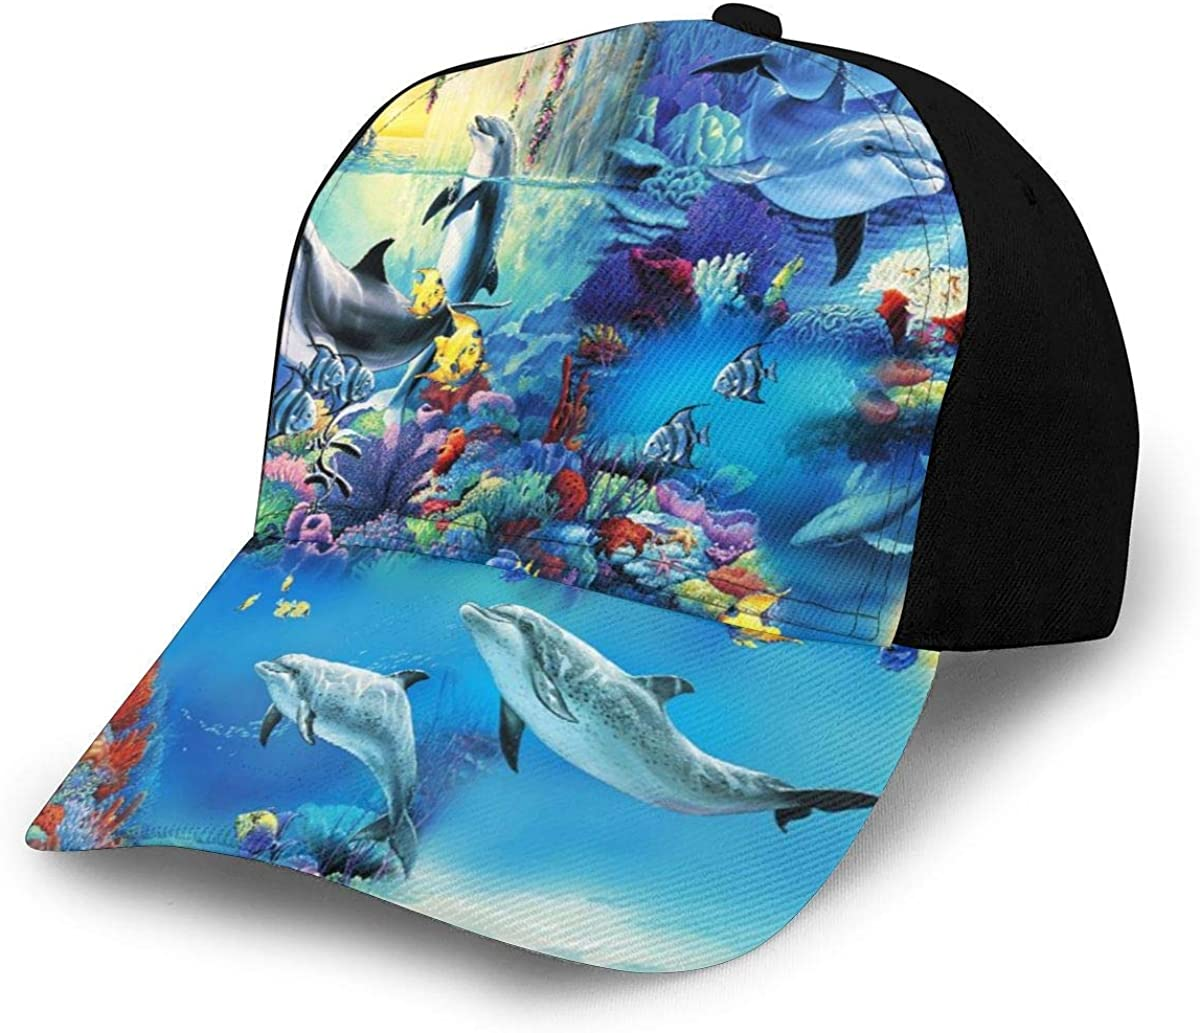 Dolphin World Paradise Lightweight Unisex Baseball Caps Adjustable Breathable Sun Hat for Sport Outdoor Black